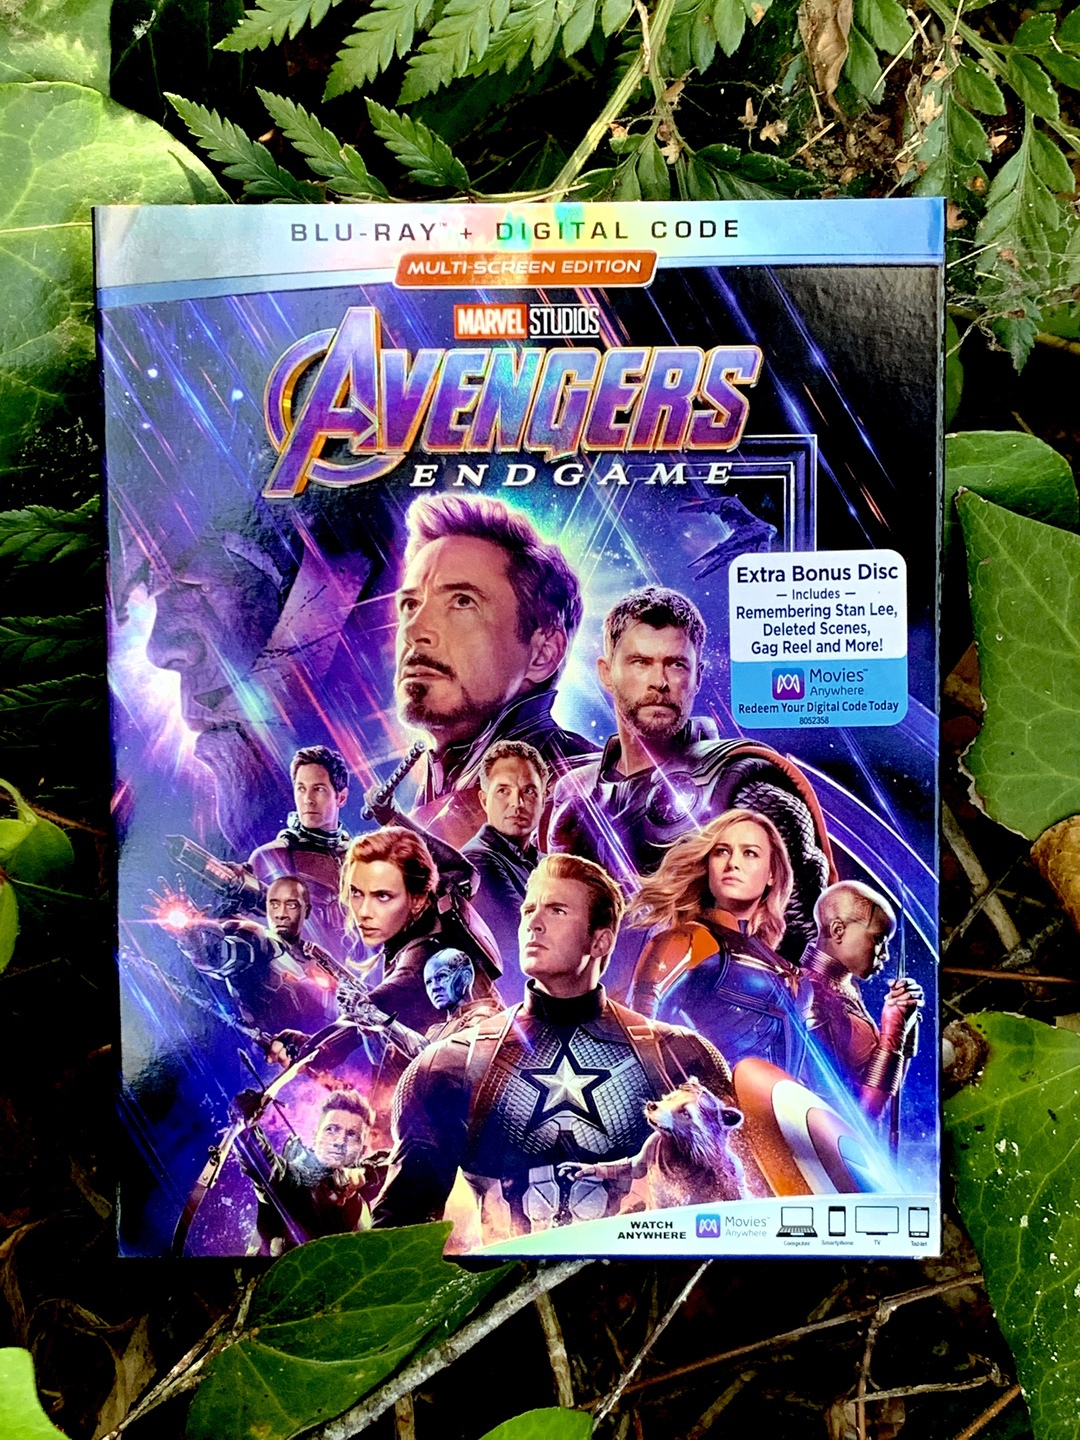 Marvel Studios Avengers: Endgame Movie